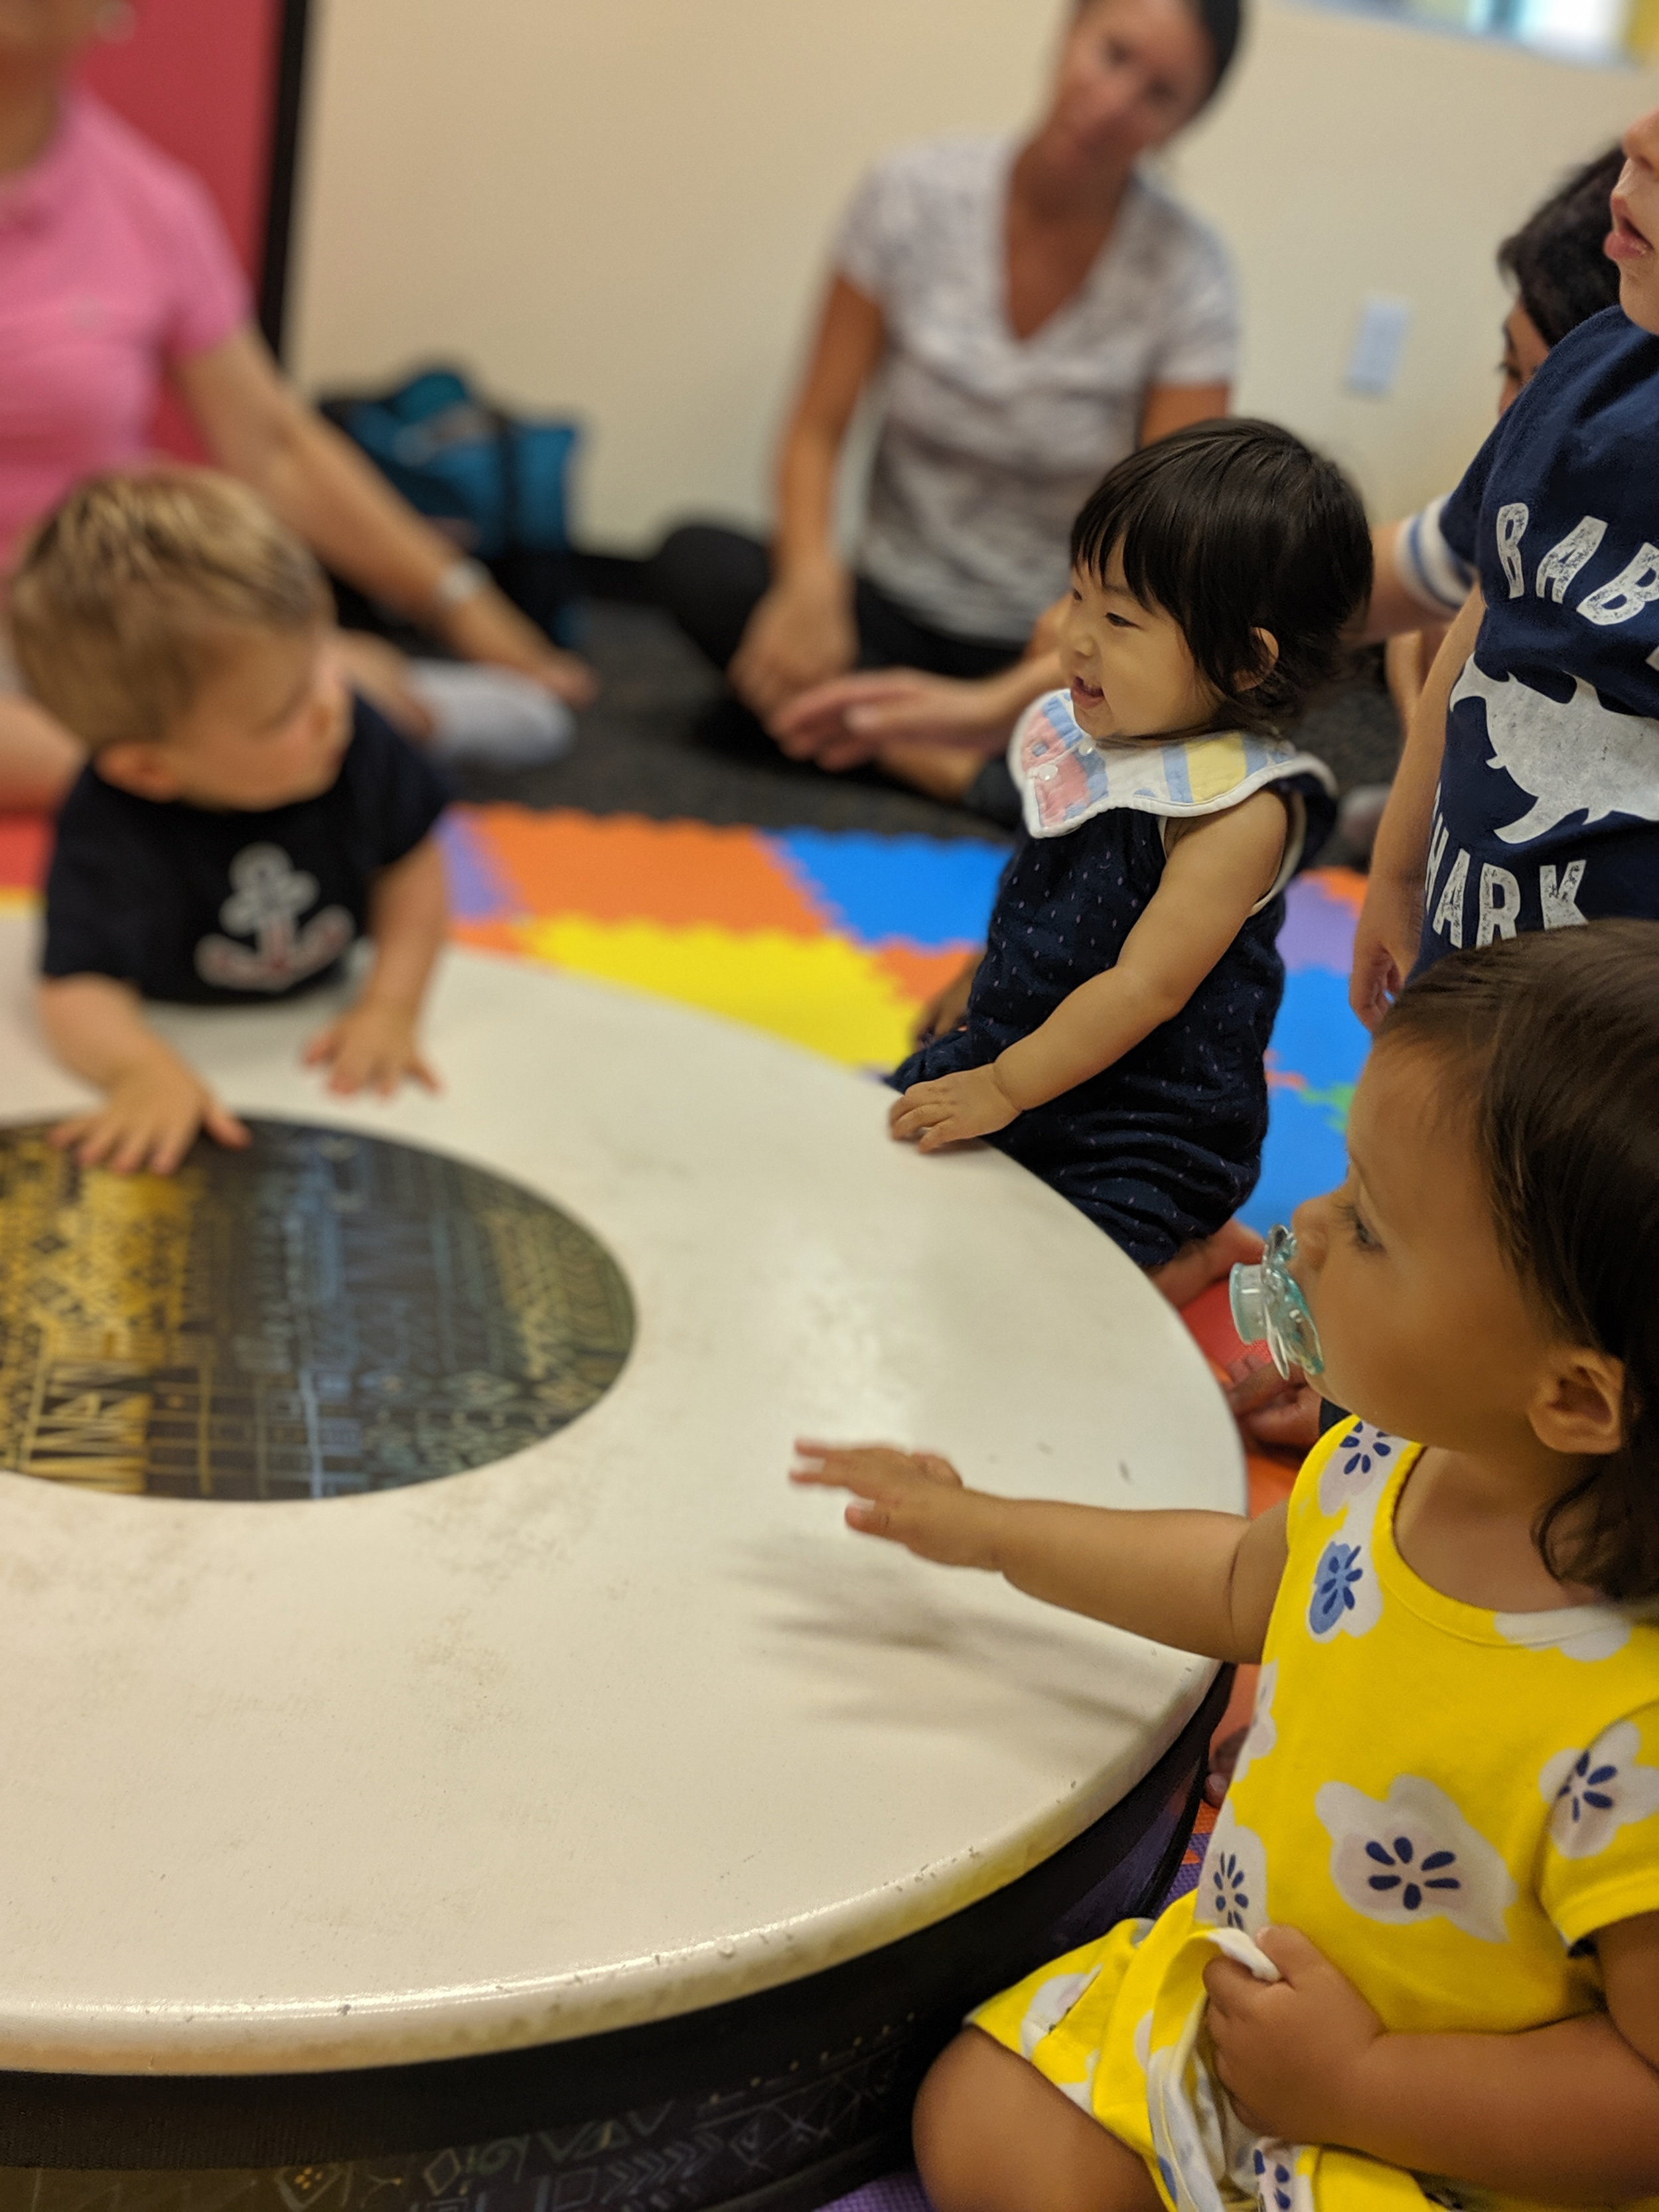 Monthly Fee:$60Drop-In Fee: $20* - ROCK BY BABY (0 - 1 years old)Saturdays 11AM - 11:45AMTOTS RATTLE & ROLL (1 - 2.5 years old)Tuesdays & Thursdays 9:30AM- 10:15AMFridays 10AM - 10:45AM & 11AM - 11:45AMSaturdays 10AM - 10:45 & 11AM - 11:45AM*Spot availability for drop-in is dependent upon class size.